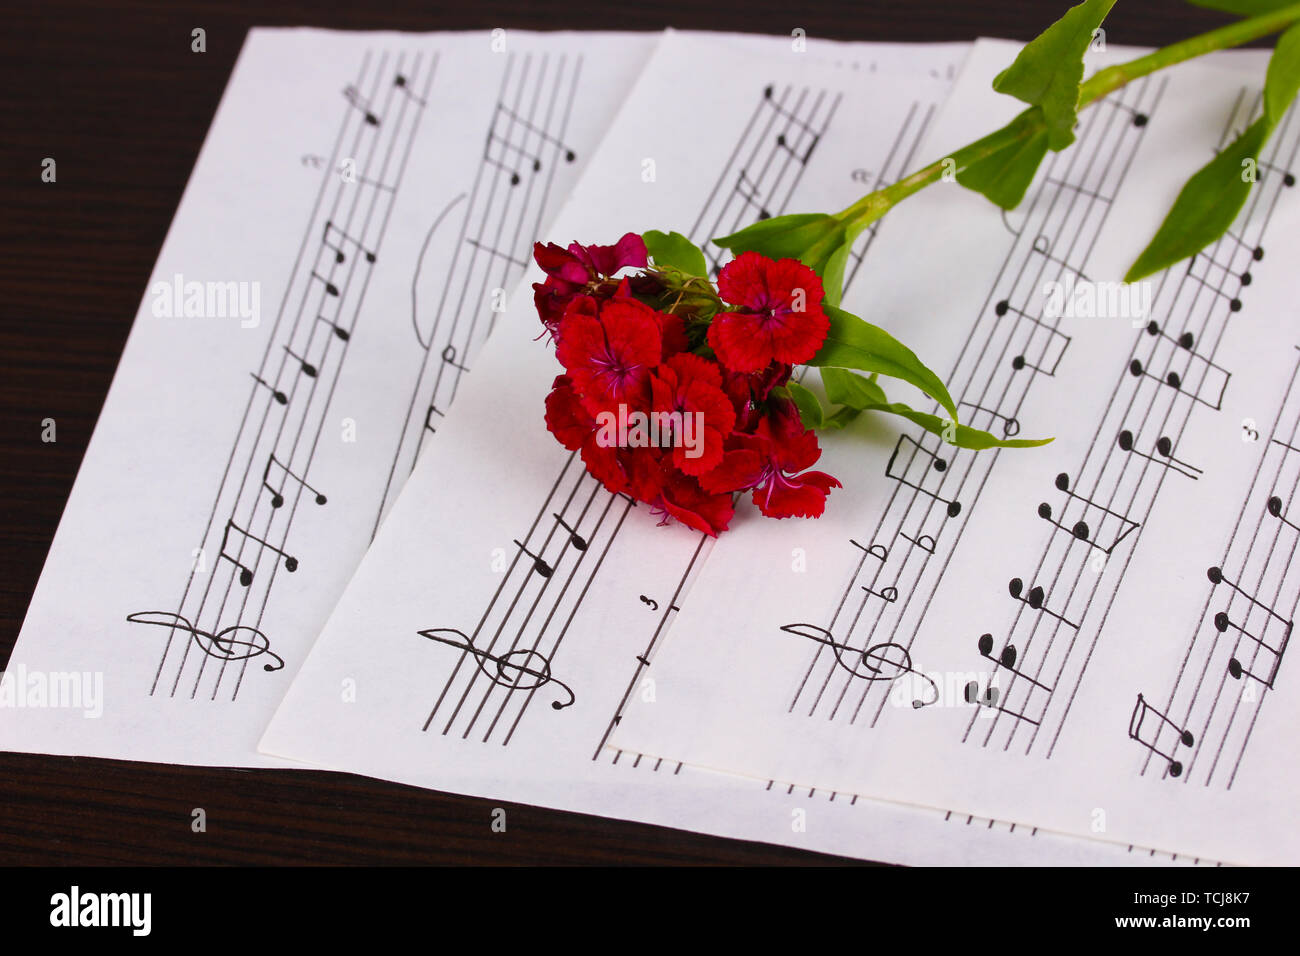 Musical notes and flower on wooden table - Stock Image